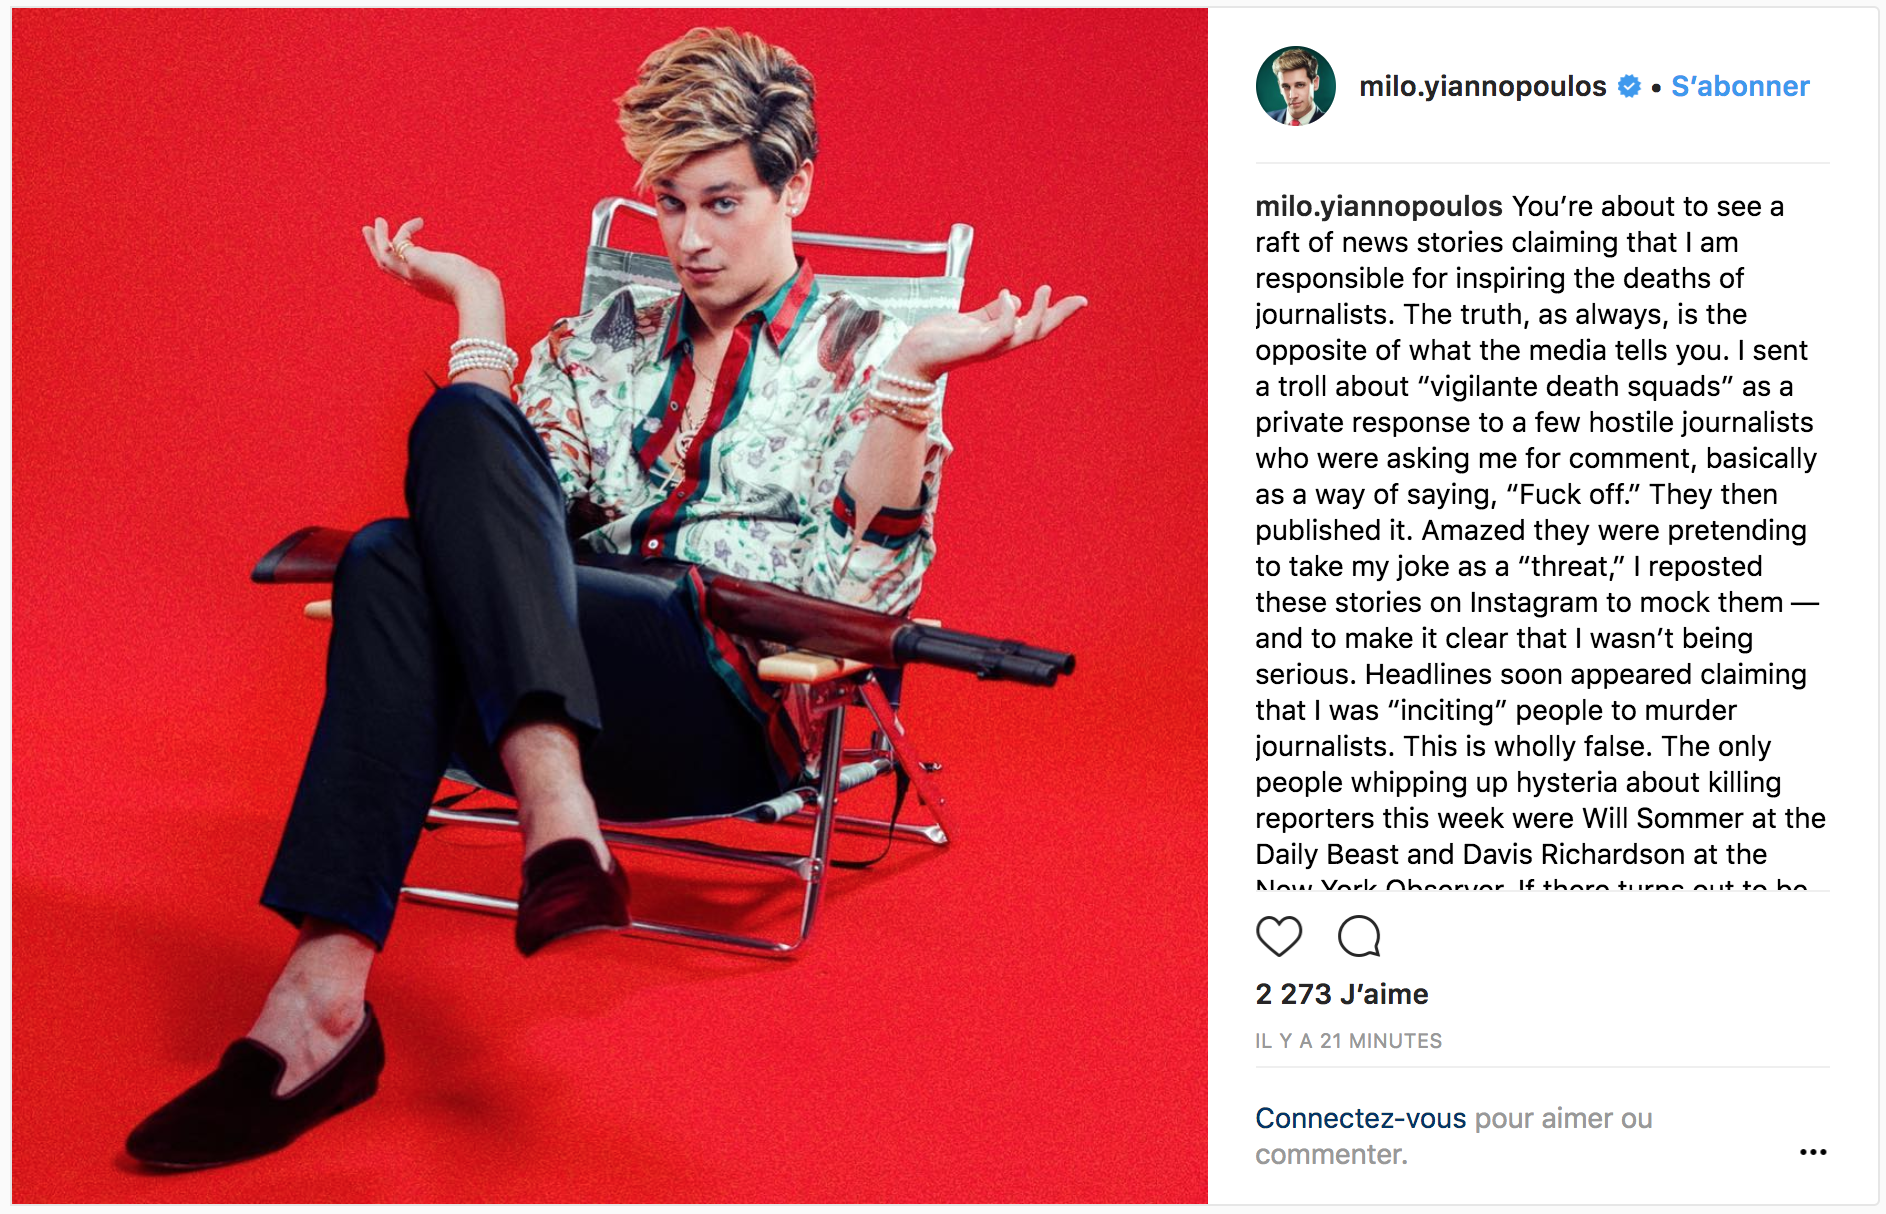 Instagram post by Milo Yiannopoulos reacting to Maryland newspaper shooting